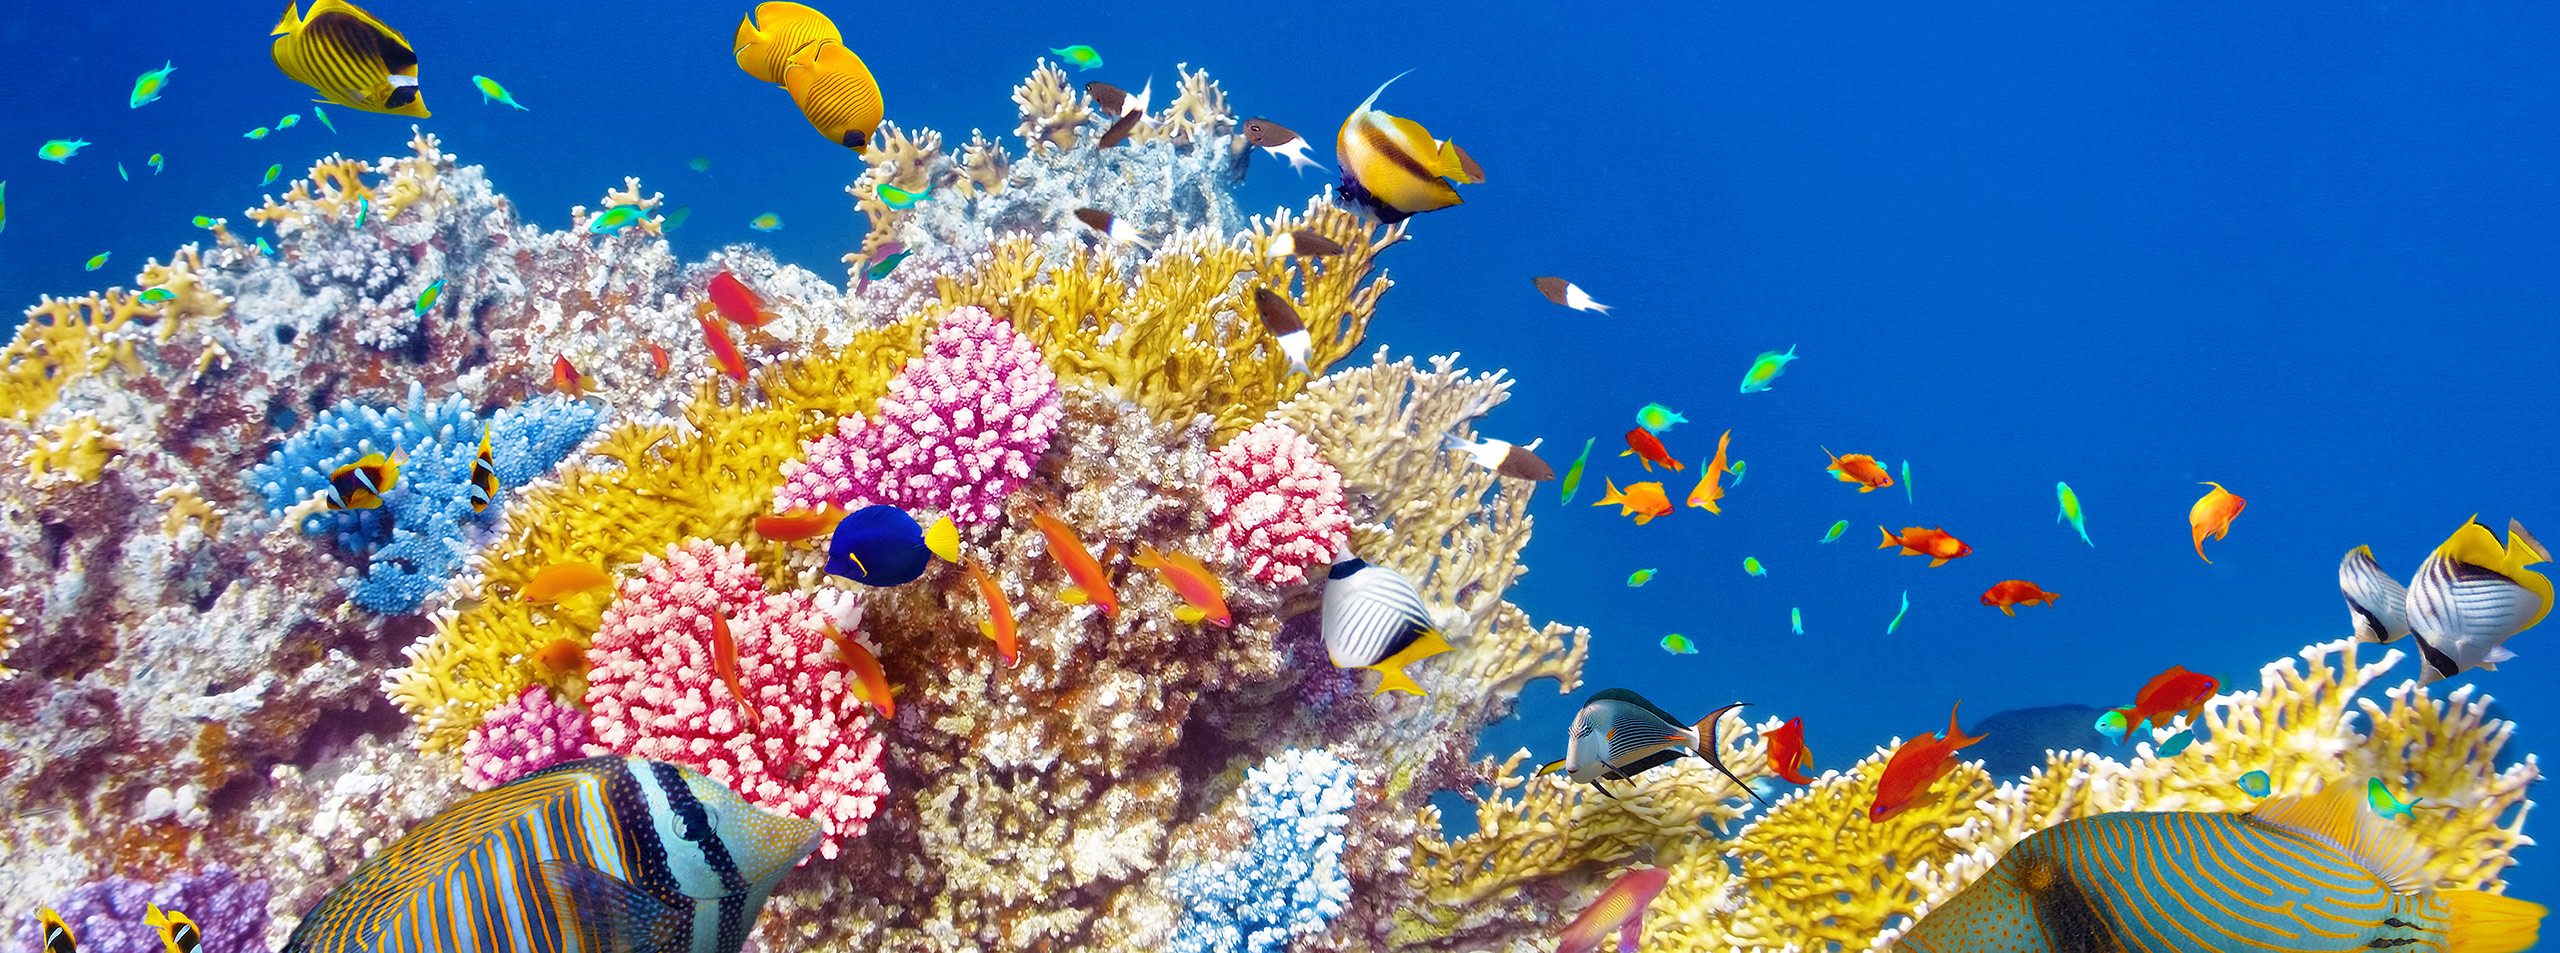 Tropical Fish and Coral, Great Barrier Reef